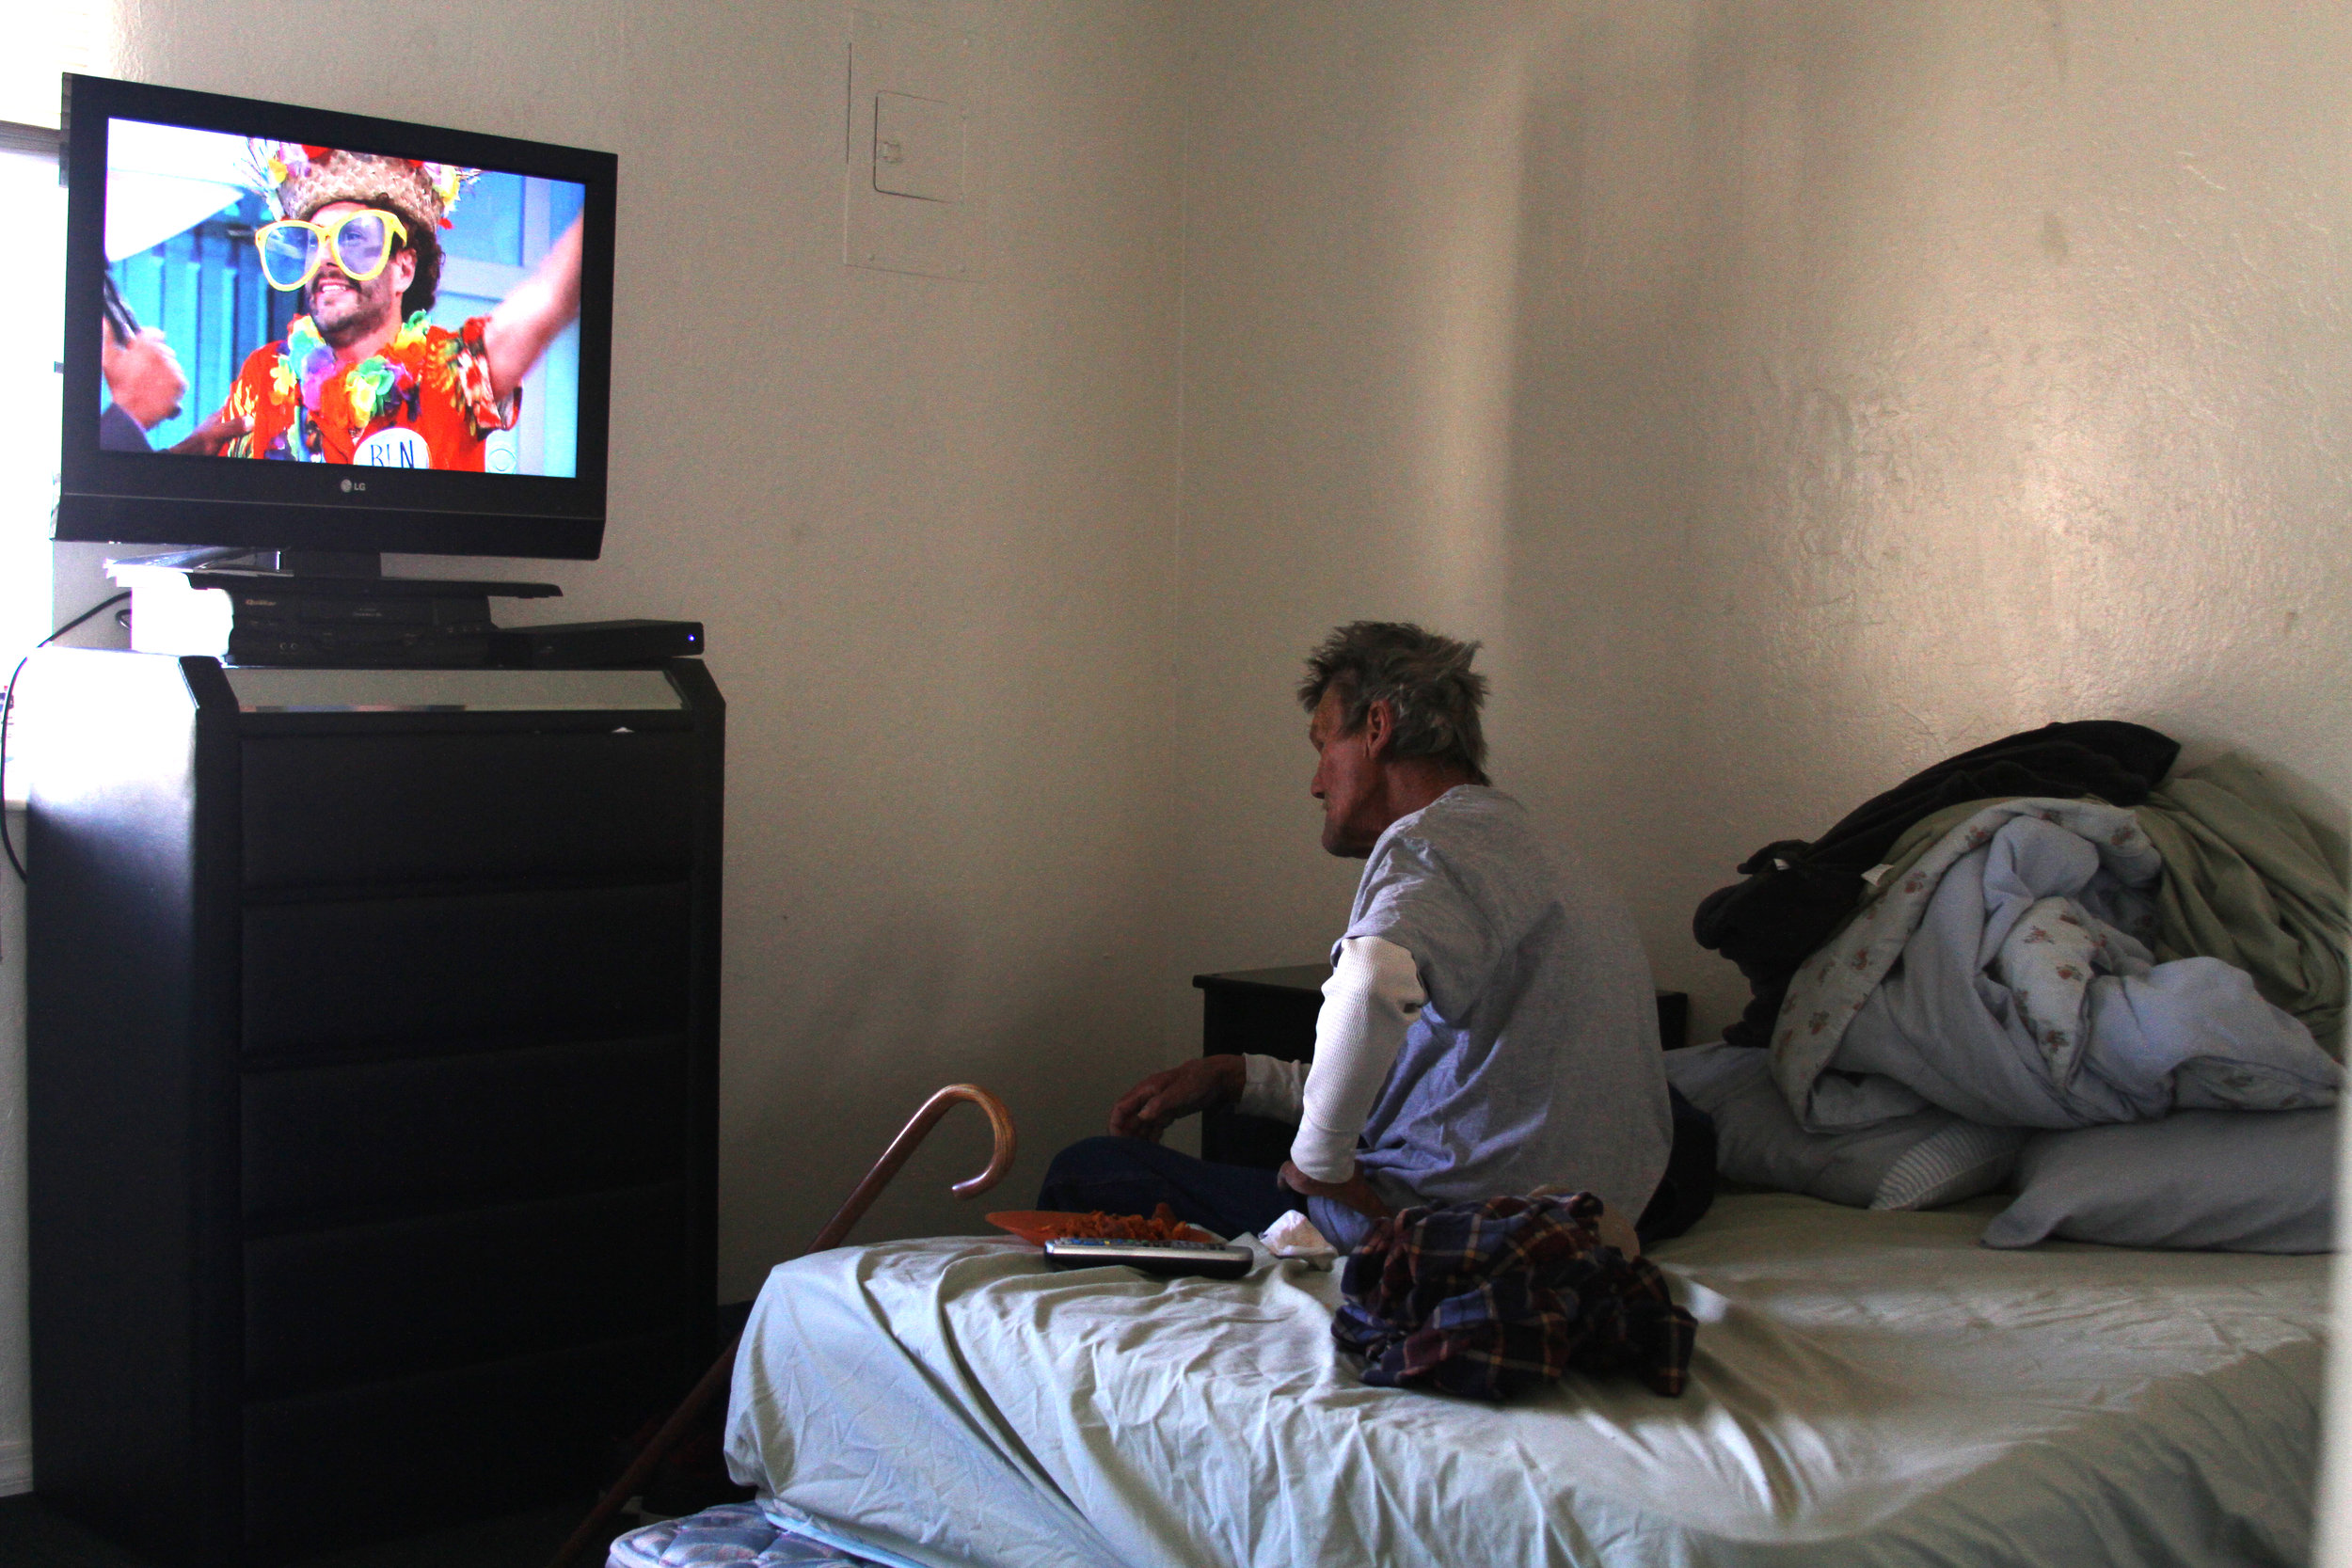 Doug watches trippy TV in his new room, found and furnished by volunteers.